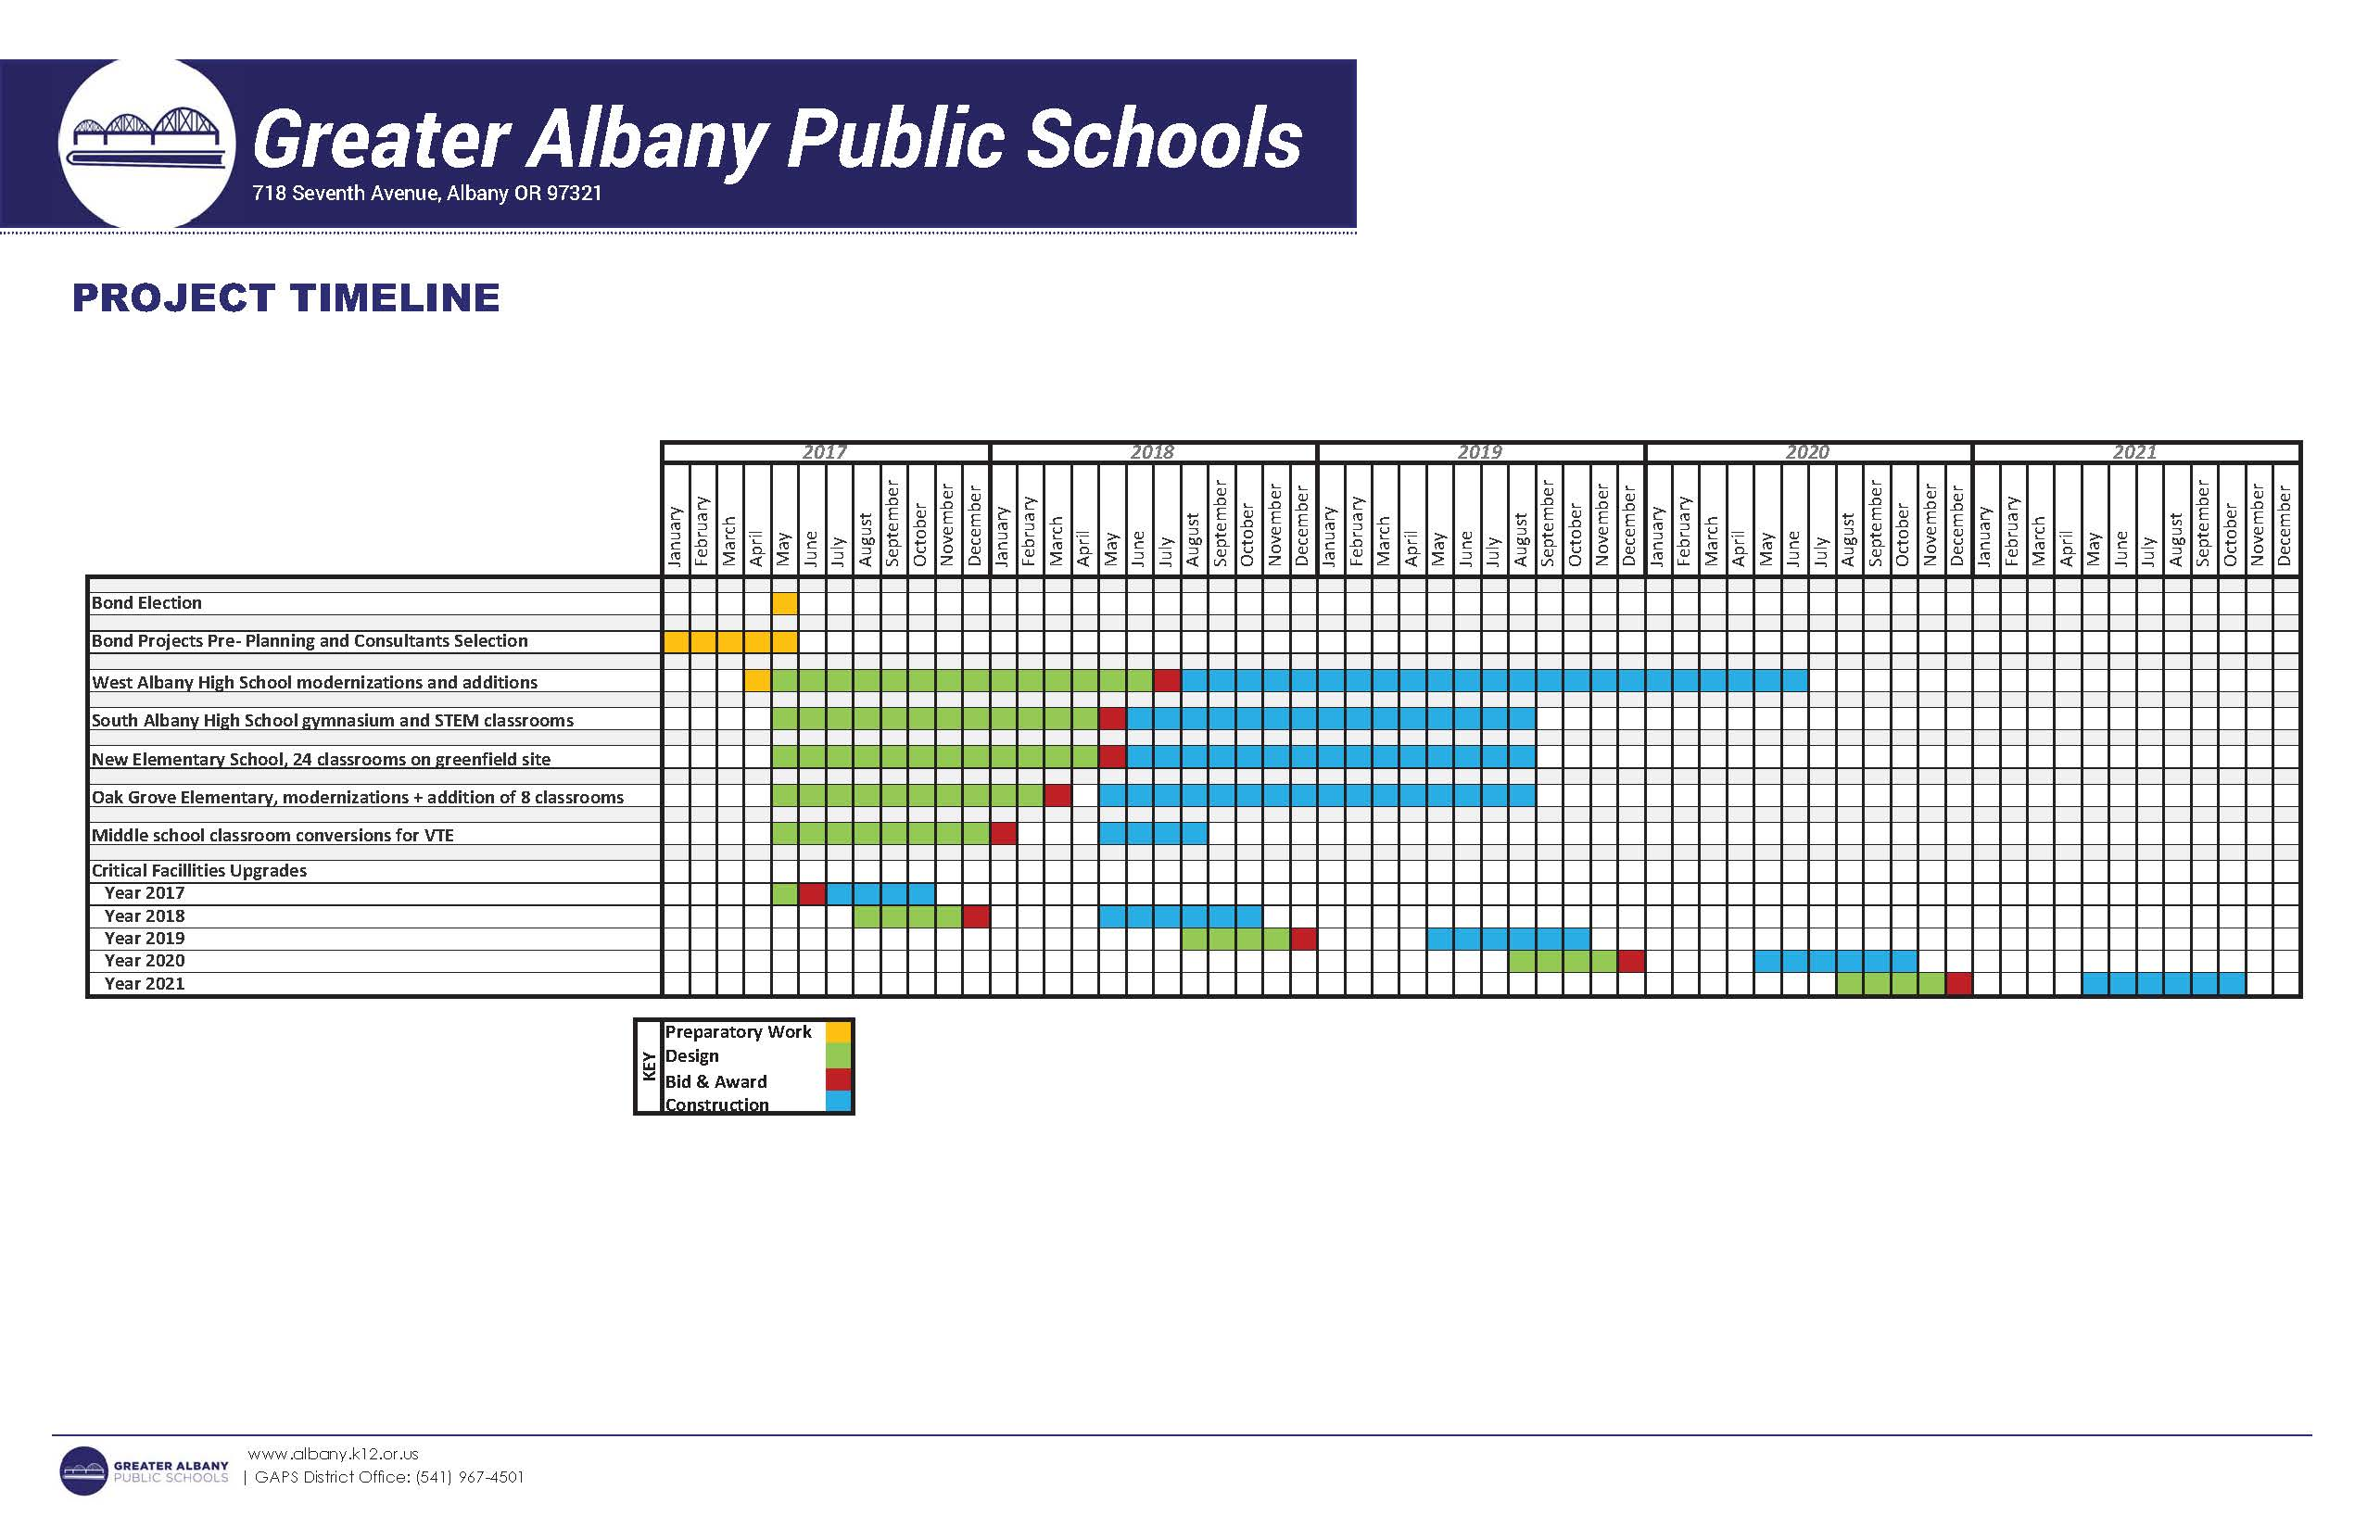 Bond project planning has started west albany high school for School project plan